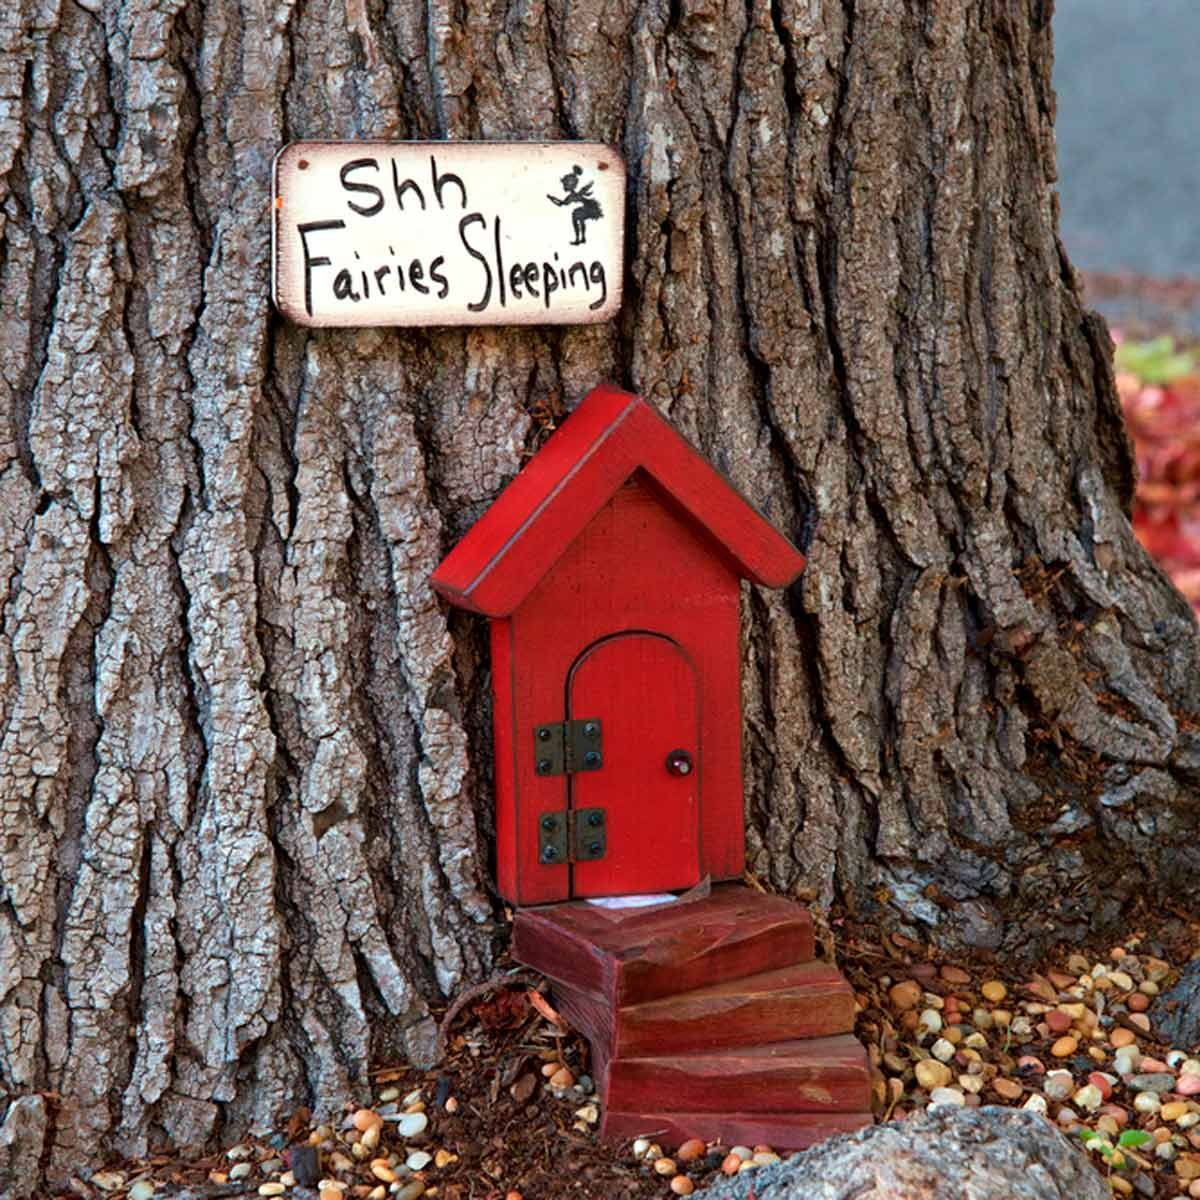 Fairy Doors Are the Latest Trend Enchanting Kids of All Ages